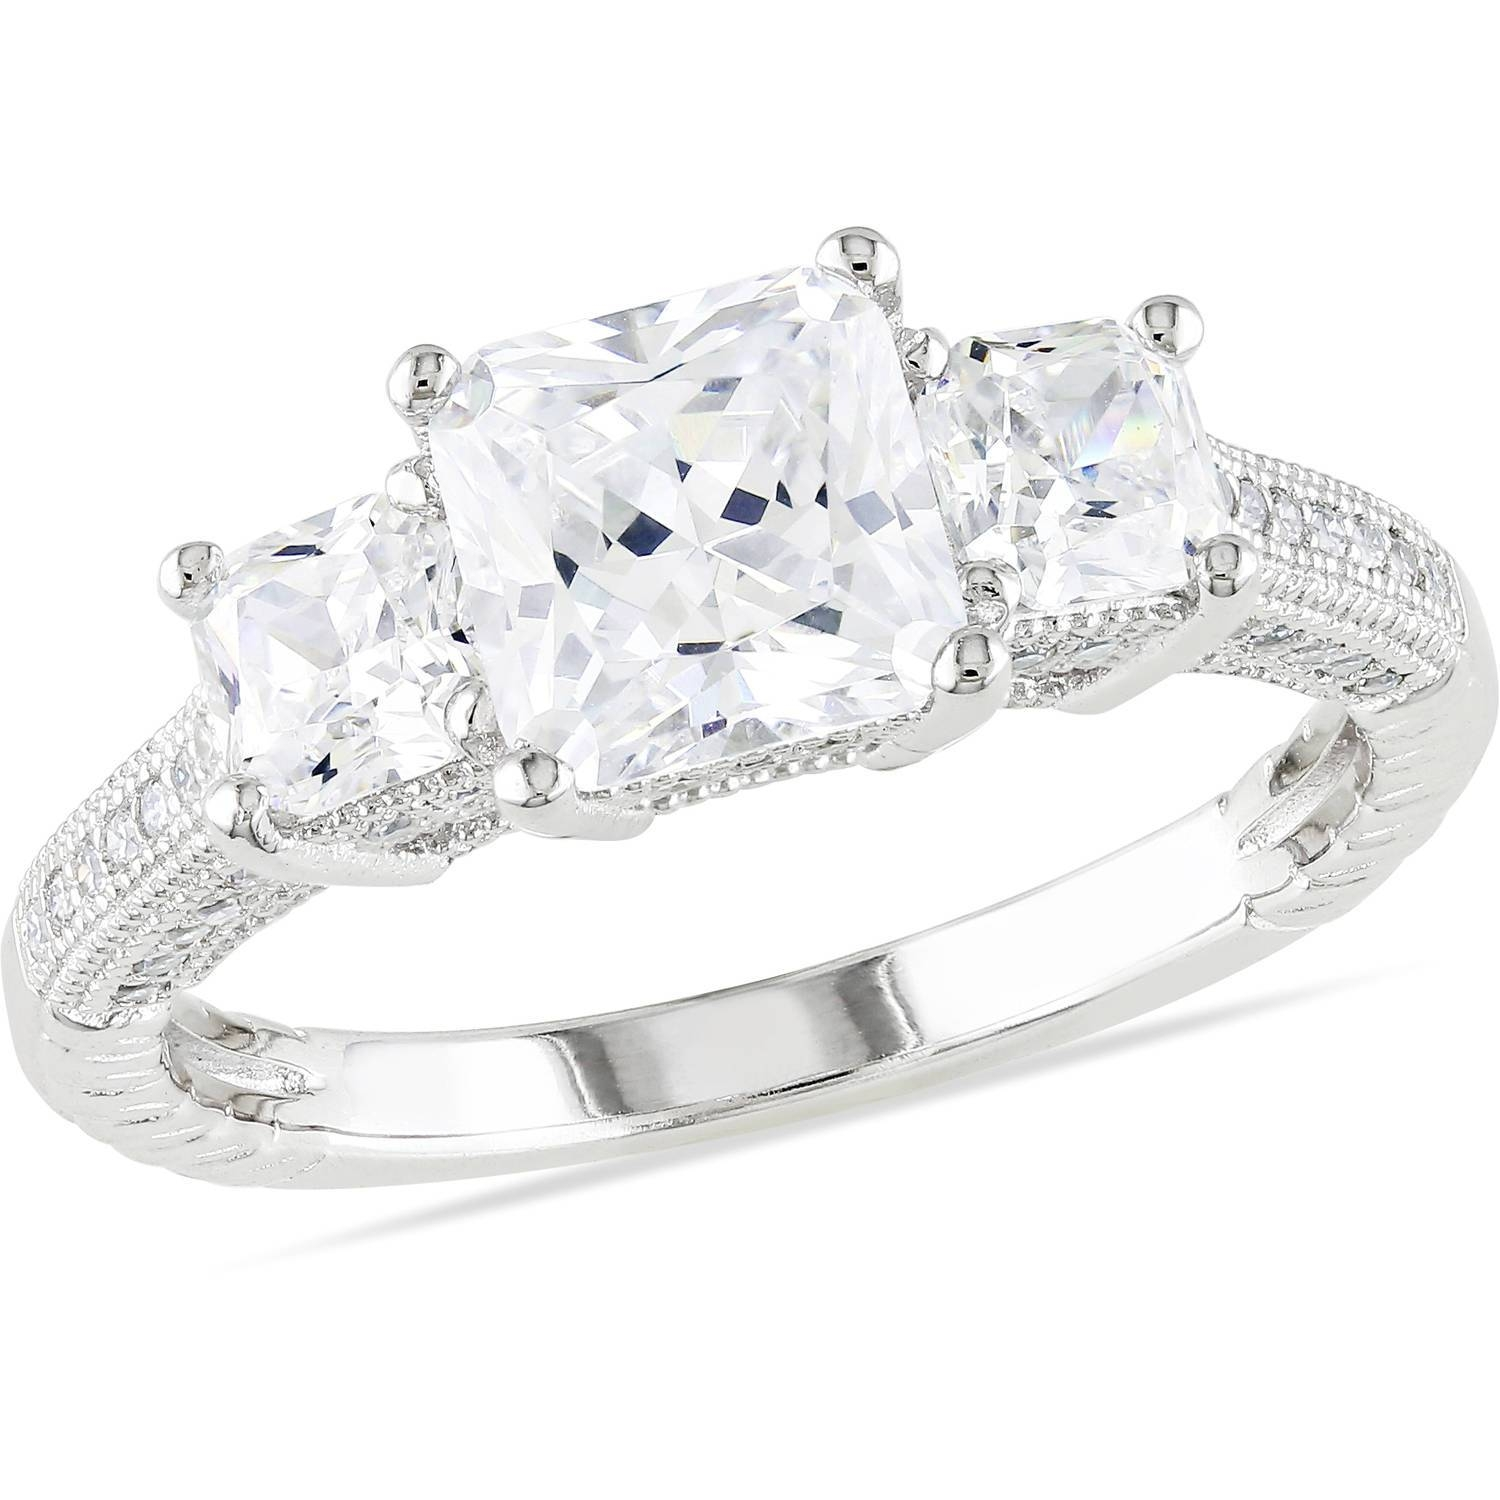 Wedding & Engagement Rings – Walmart For Walmart White Gold Engagement Rings (View 13 of 15)